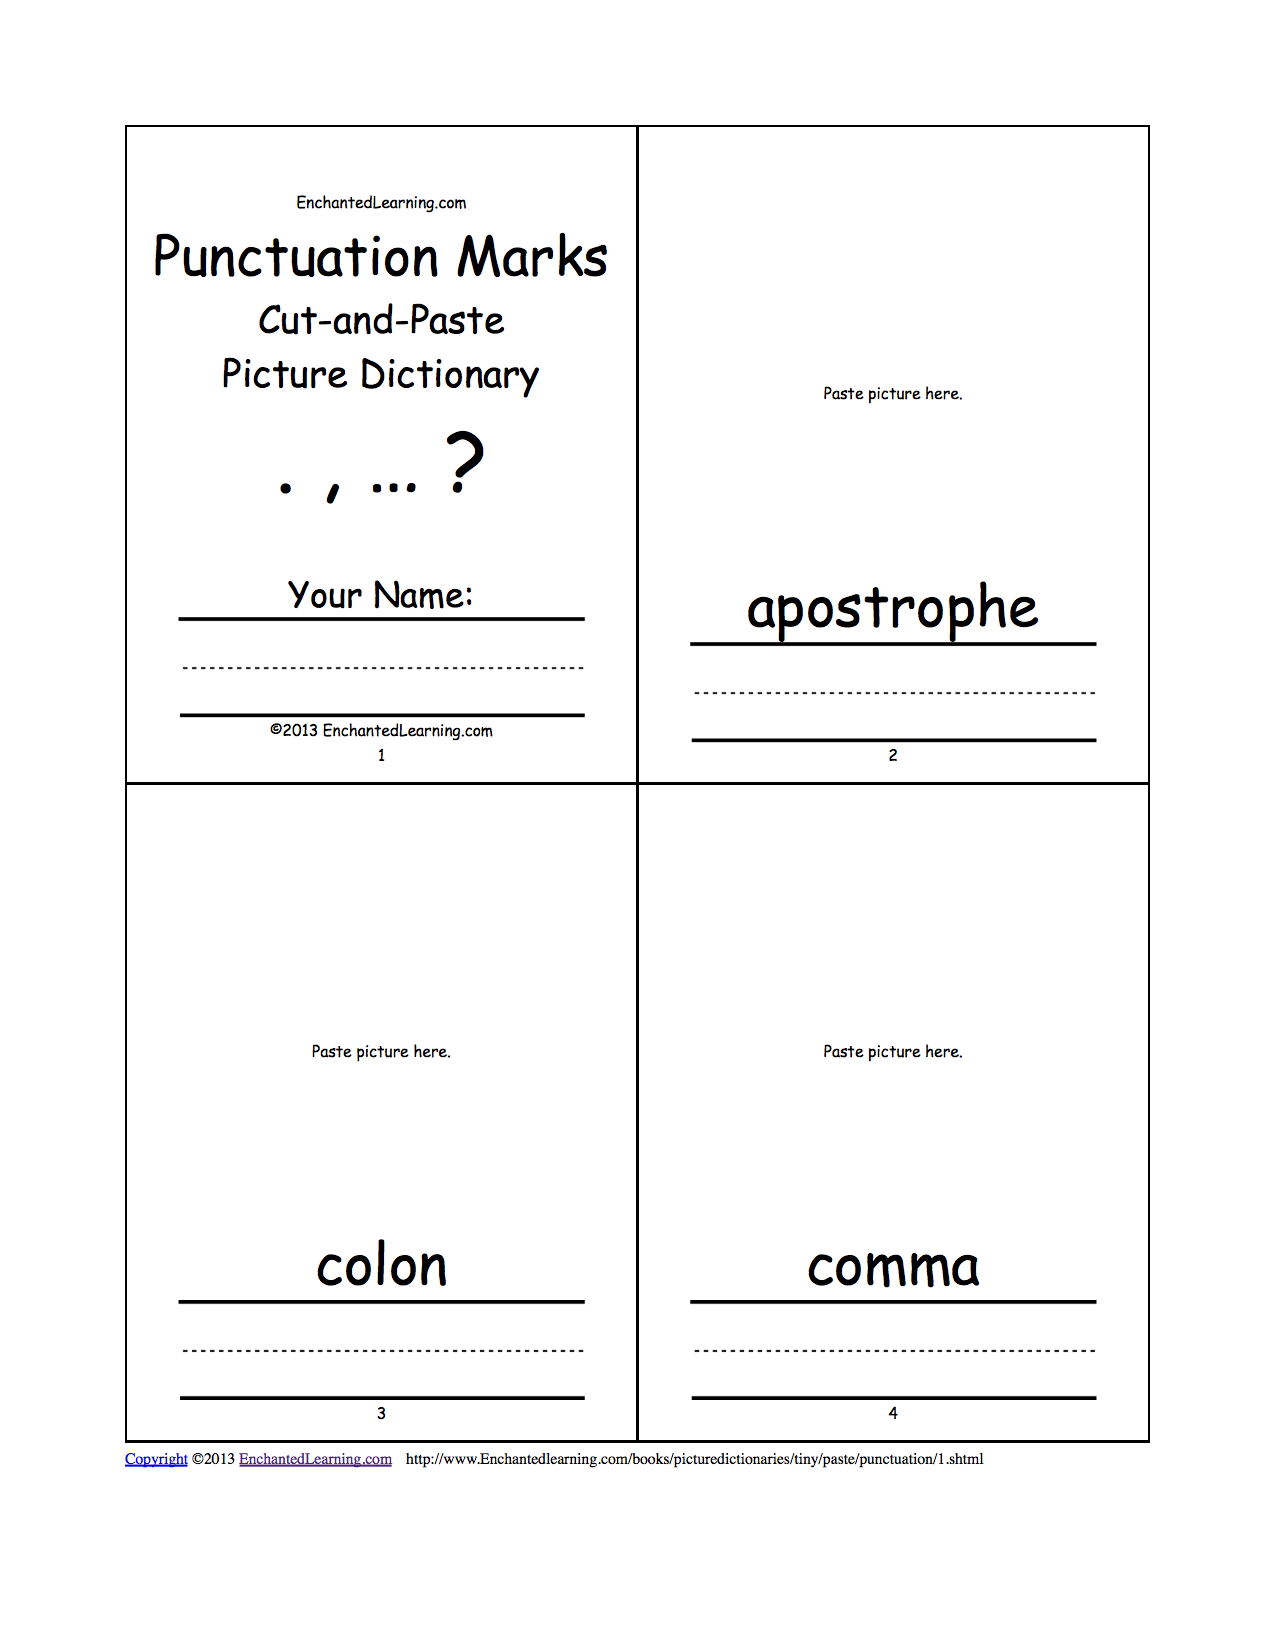 punctuation marks cut-and-paste picture dictionary